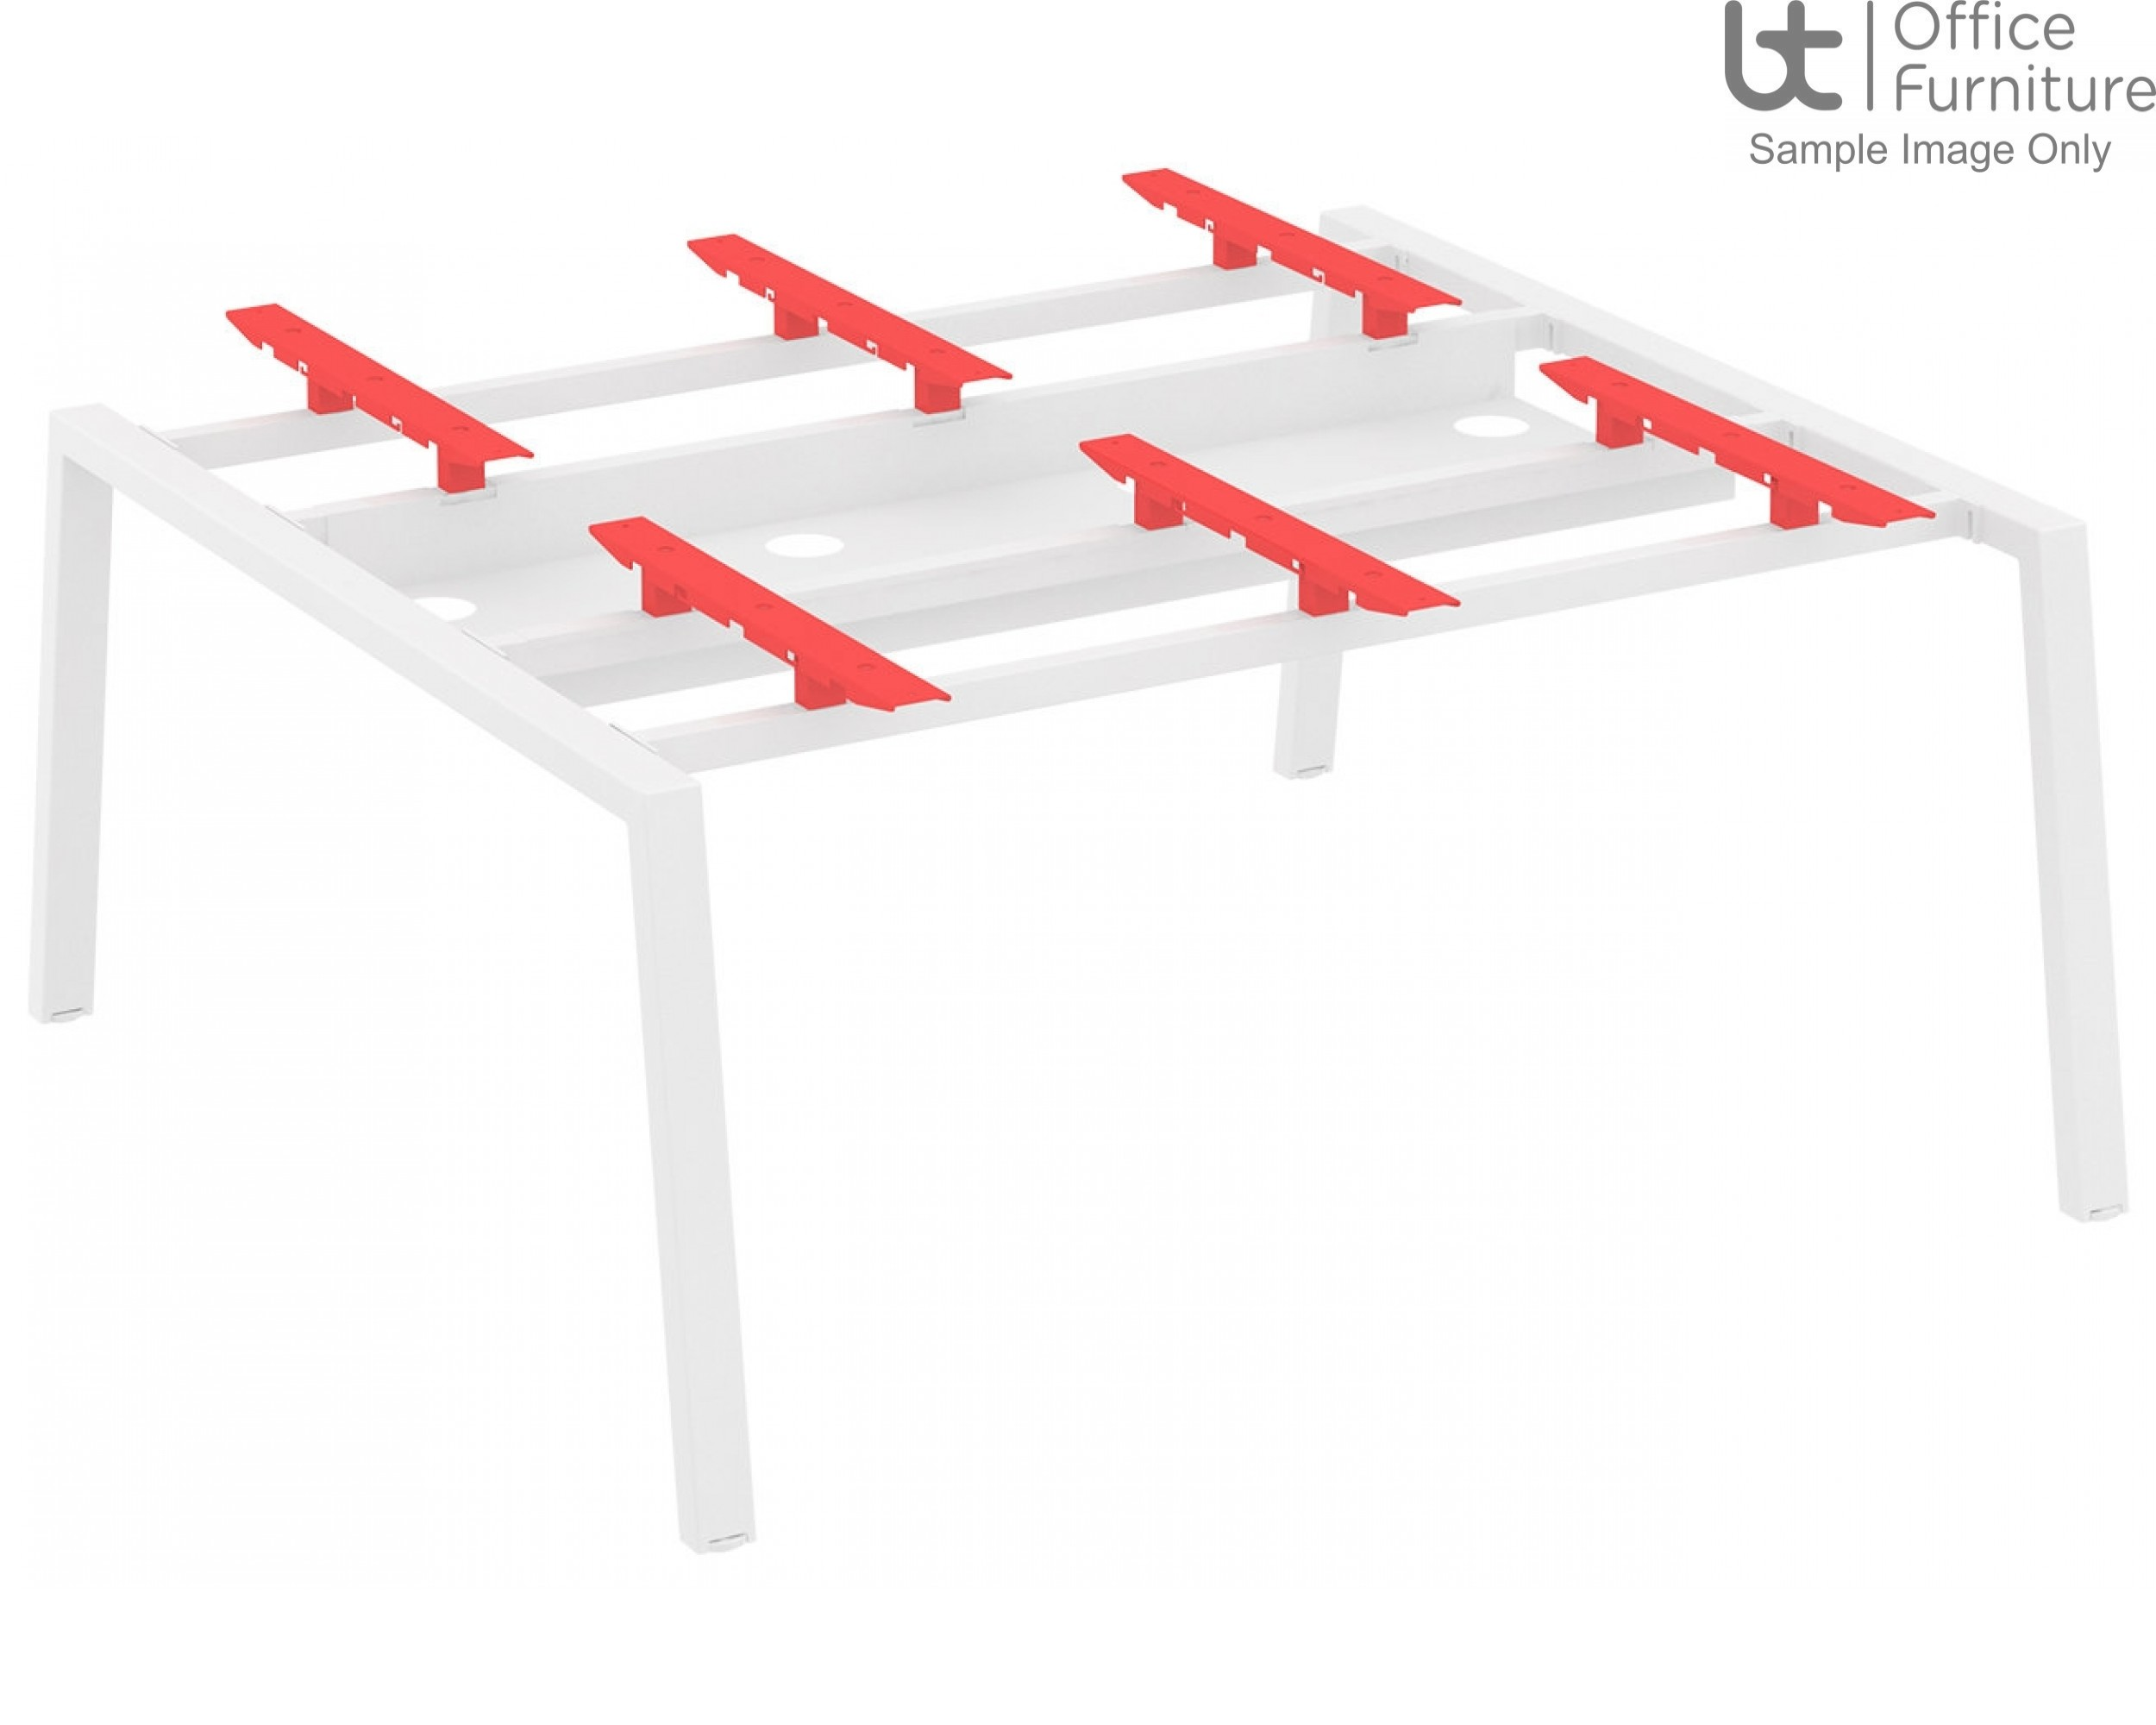 Elite Linnea Accessory - Linnea Height Settable Spacers for Double Benches